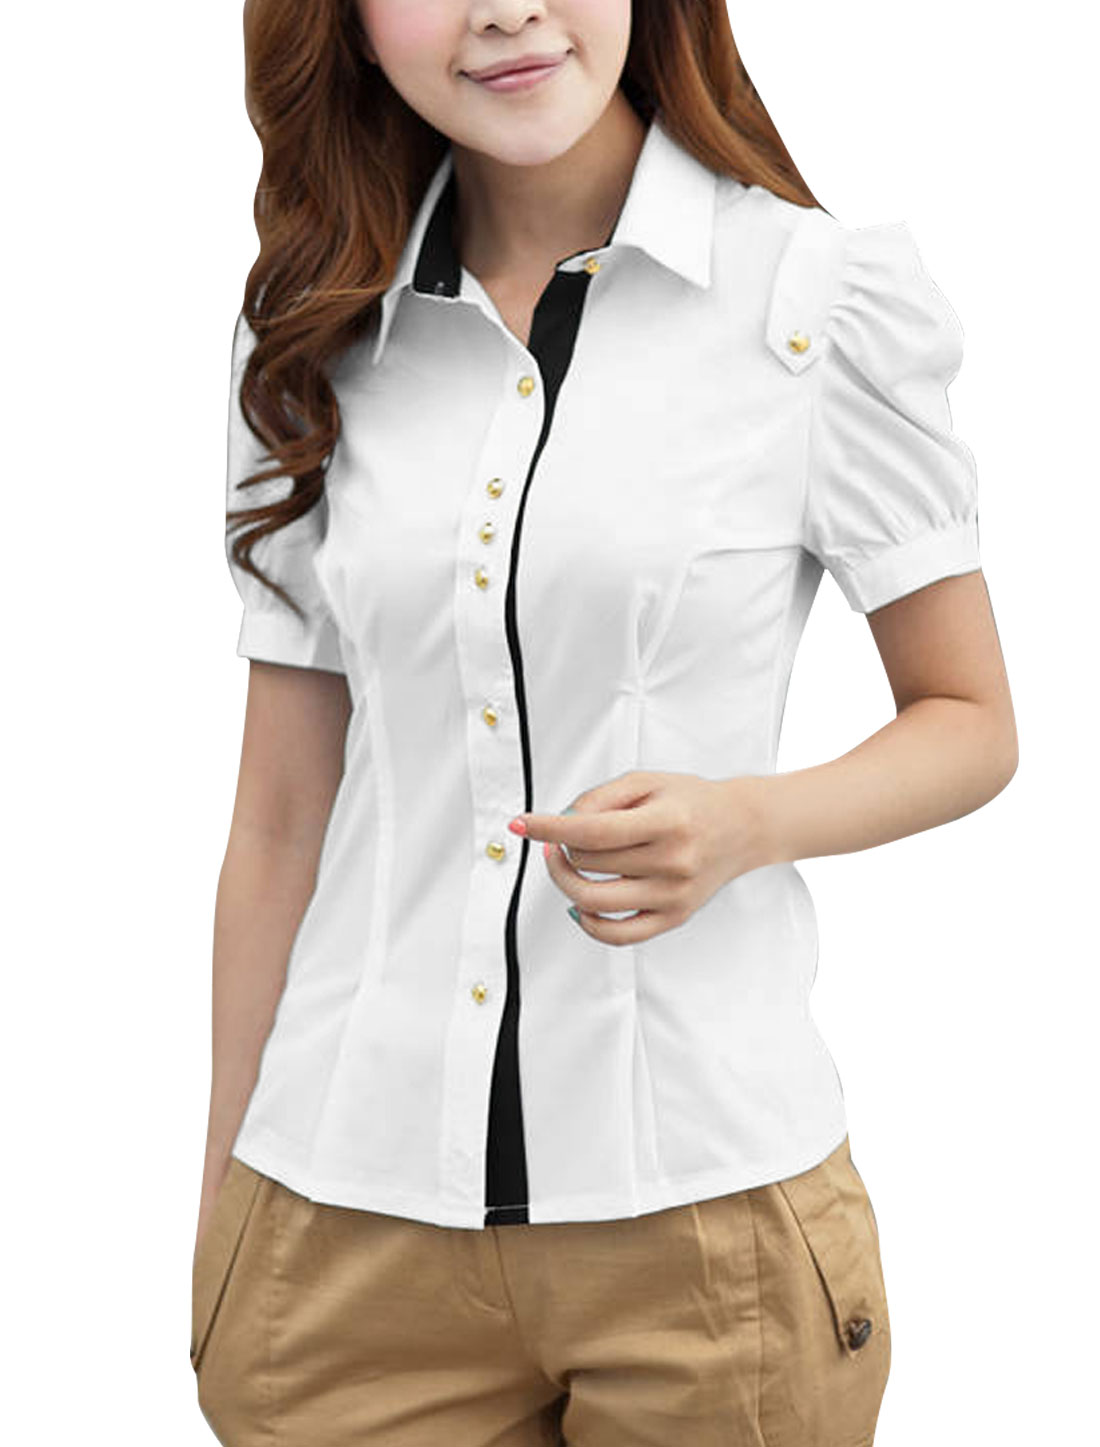 XS White Button Closure Slim Fit Two Tone Color Block Summer Shirt for Ladies